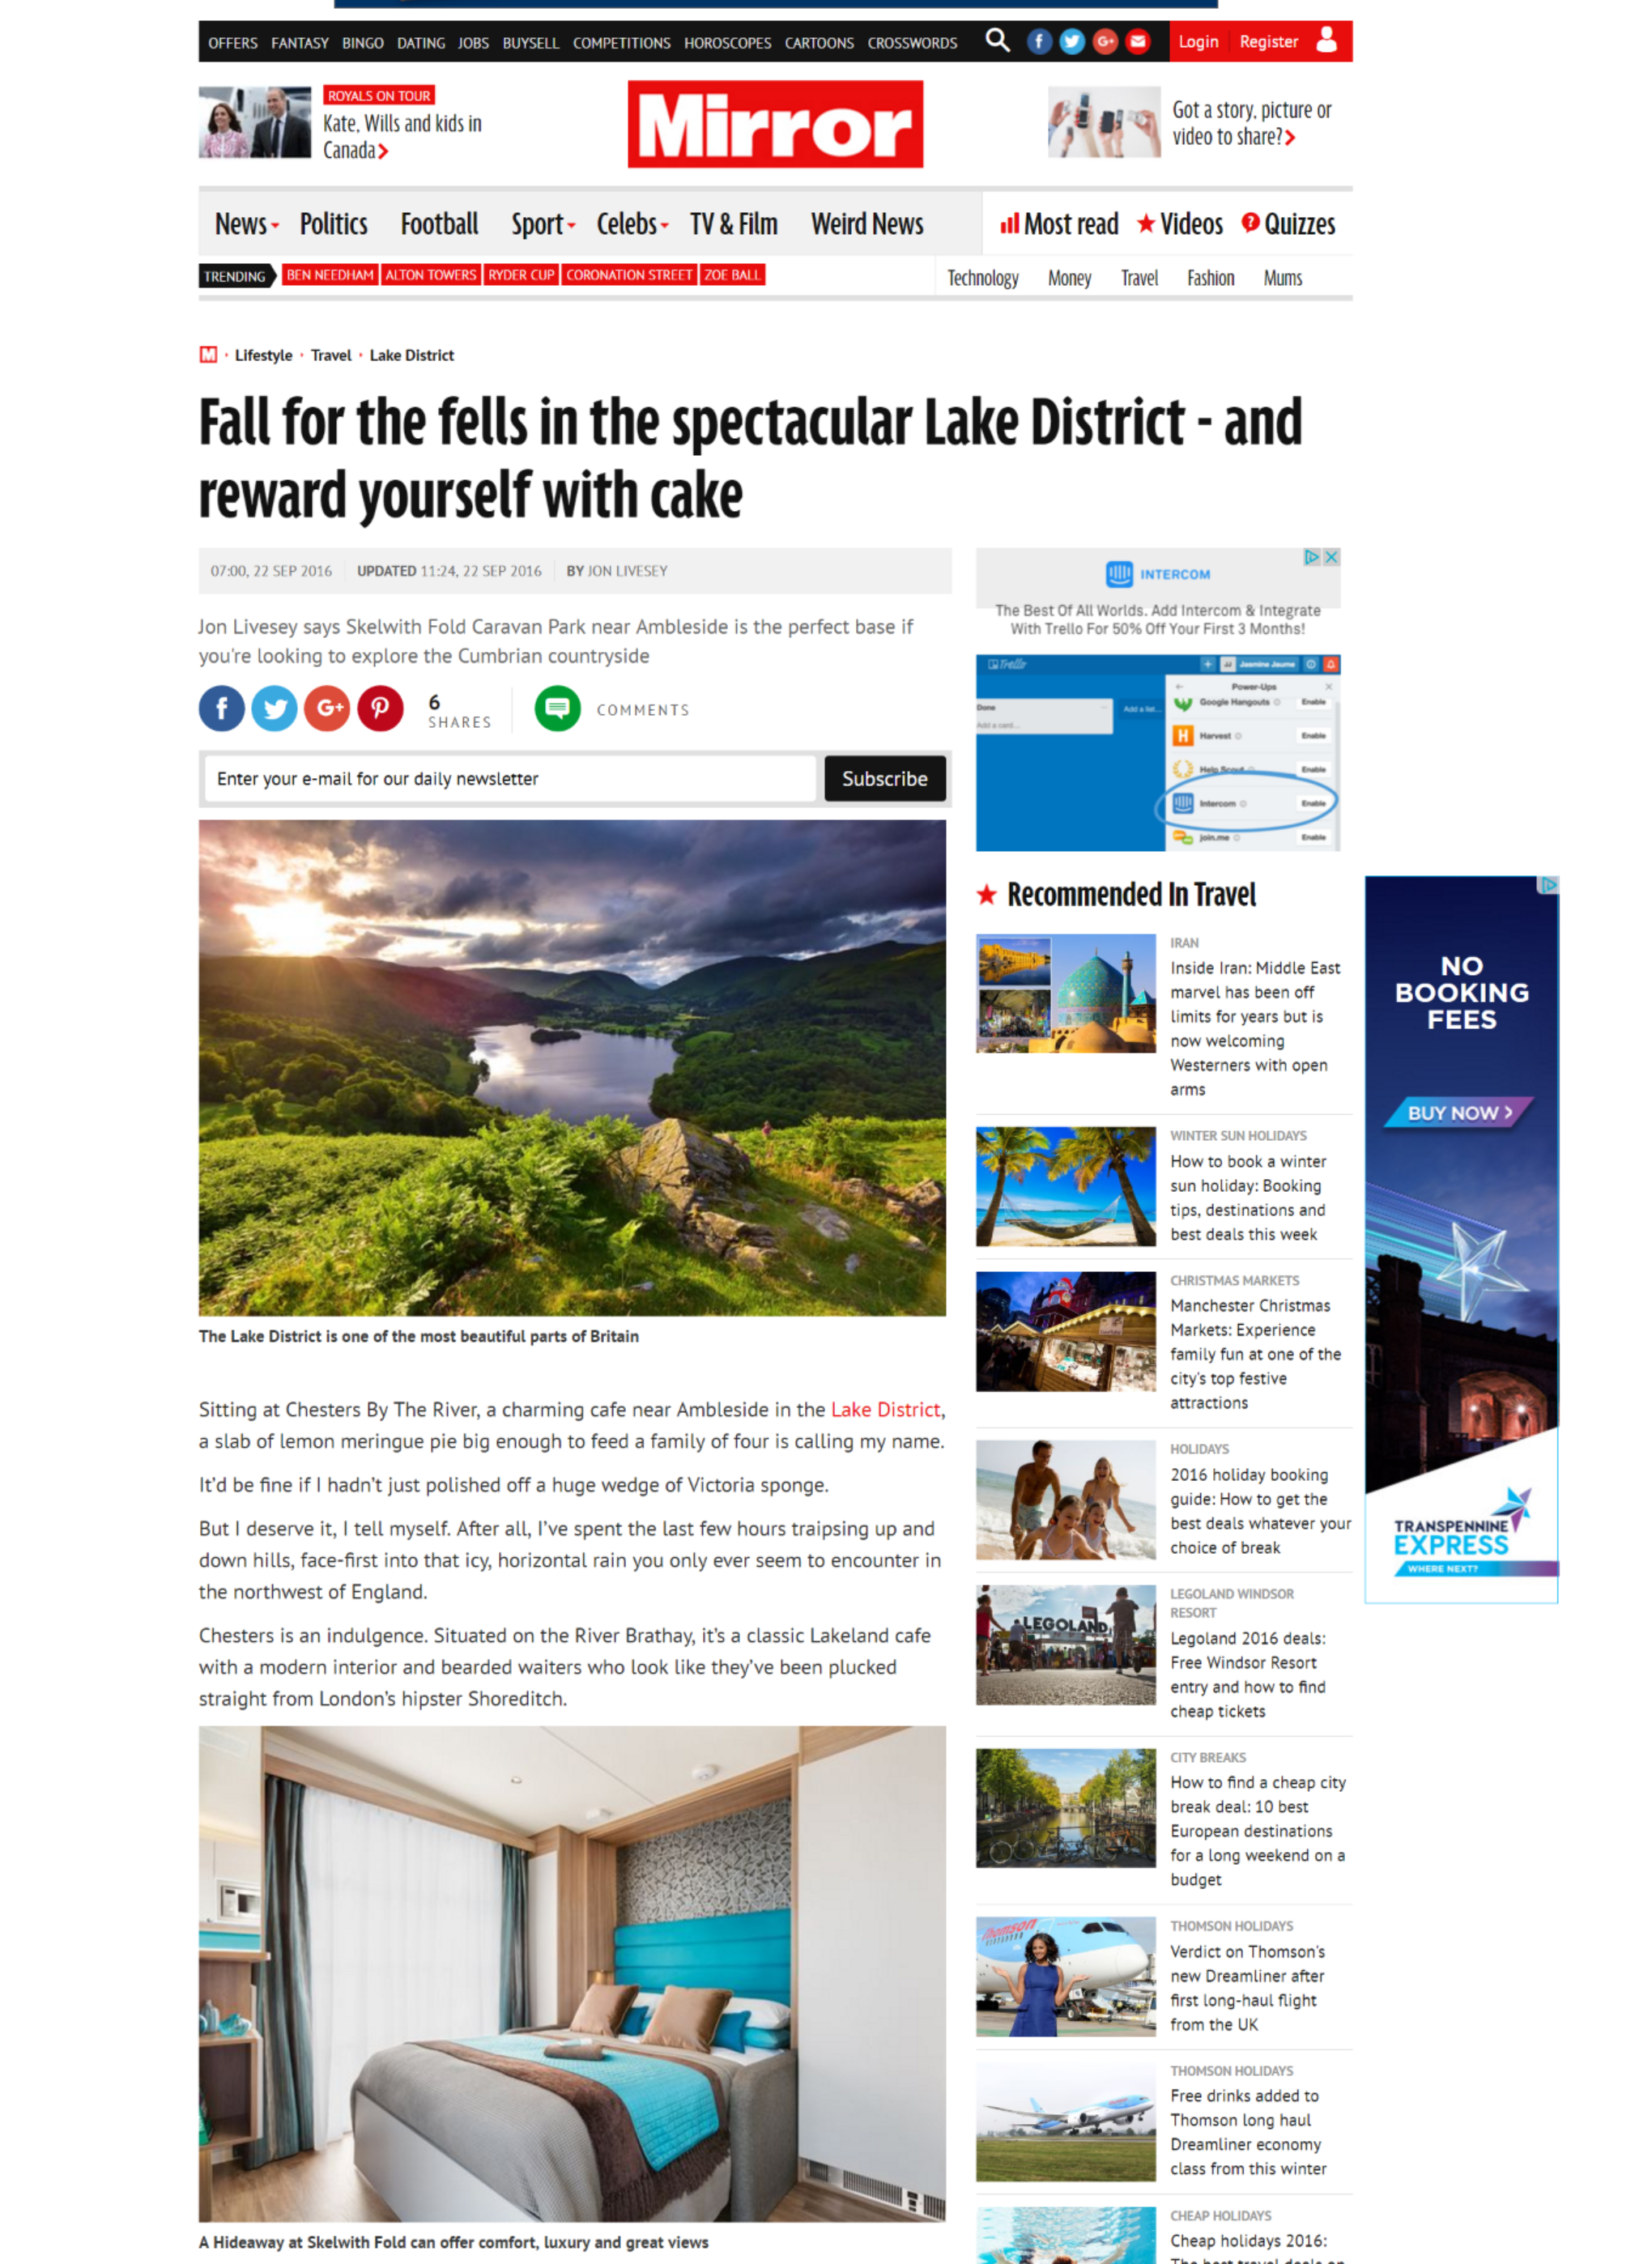 'Fall for the fells' review of Skelwith Fold Caravan Park in the Mirror